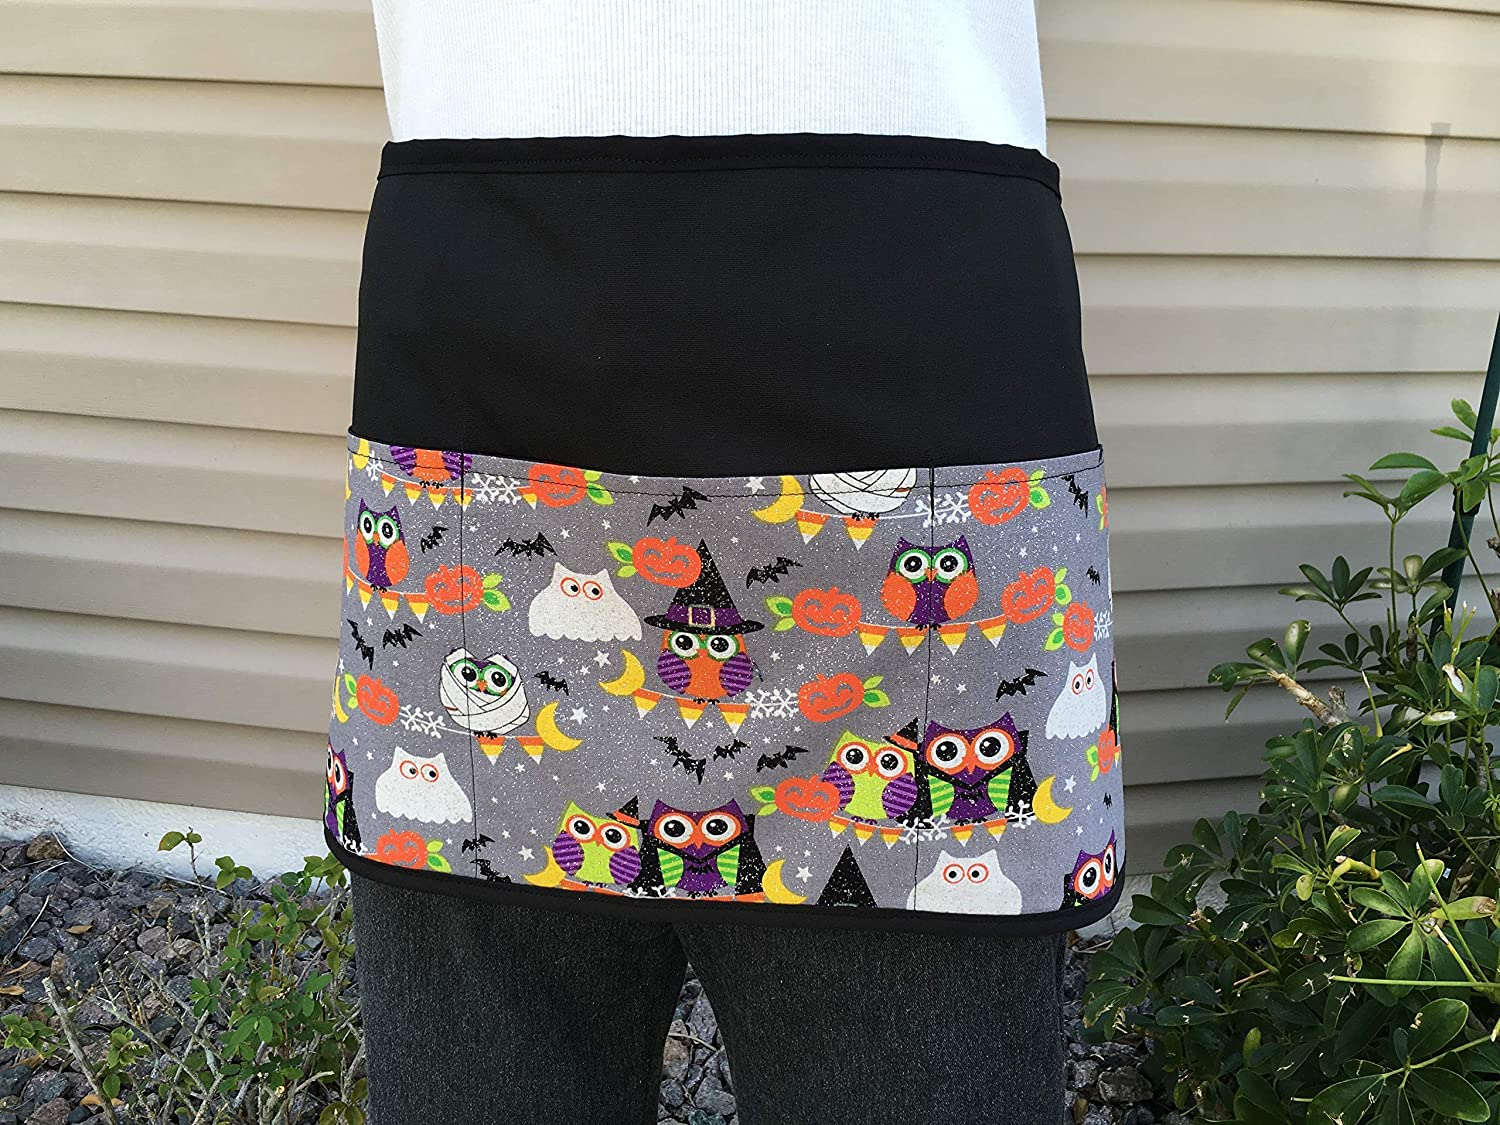 Waitress or Server 3 Pocket Half Apron, Check out 300 more aprons @ (handmade Janet Apron) restaurant cooking kitchen cute Halloween owl waiter waist design black